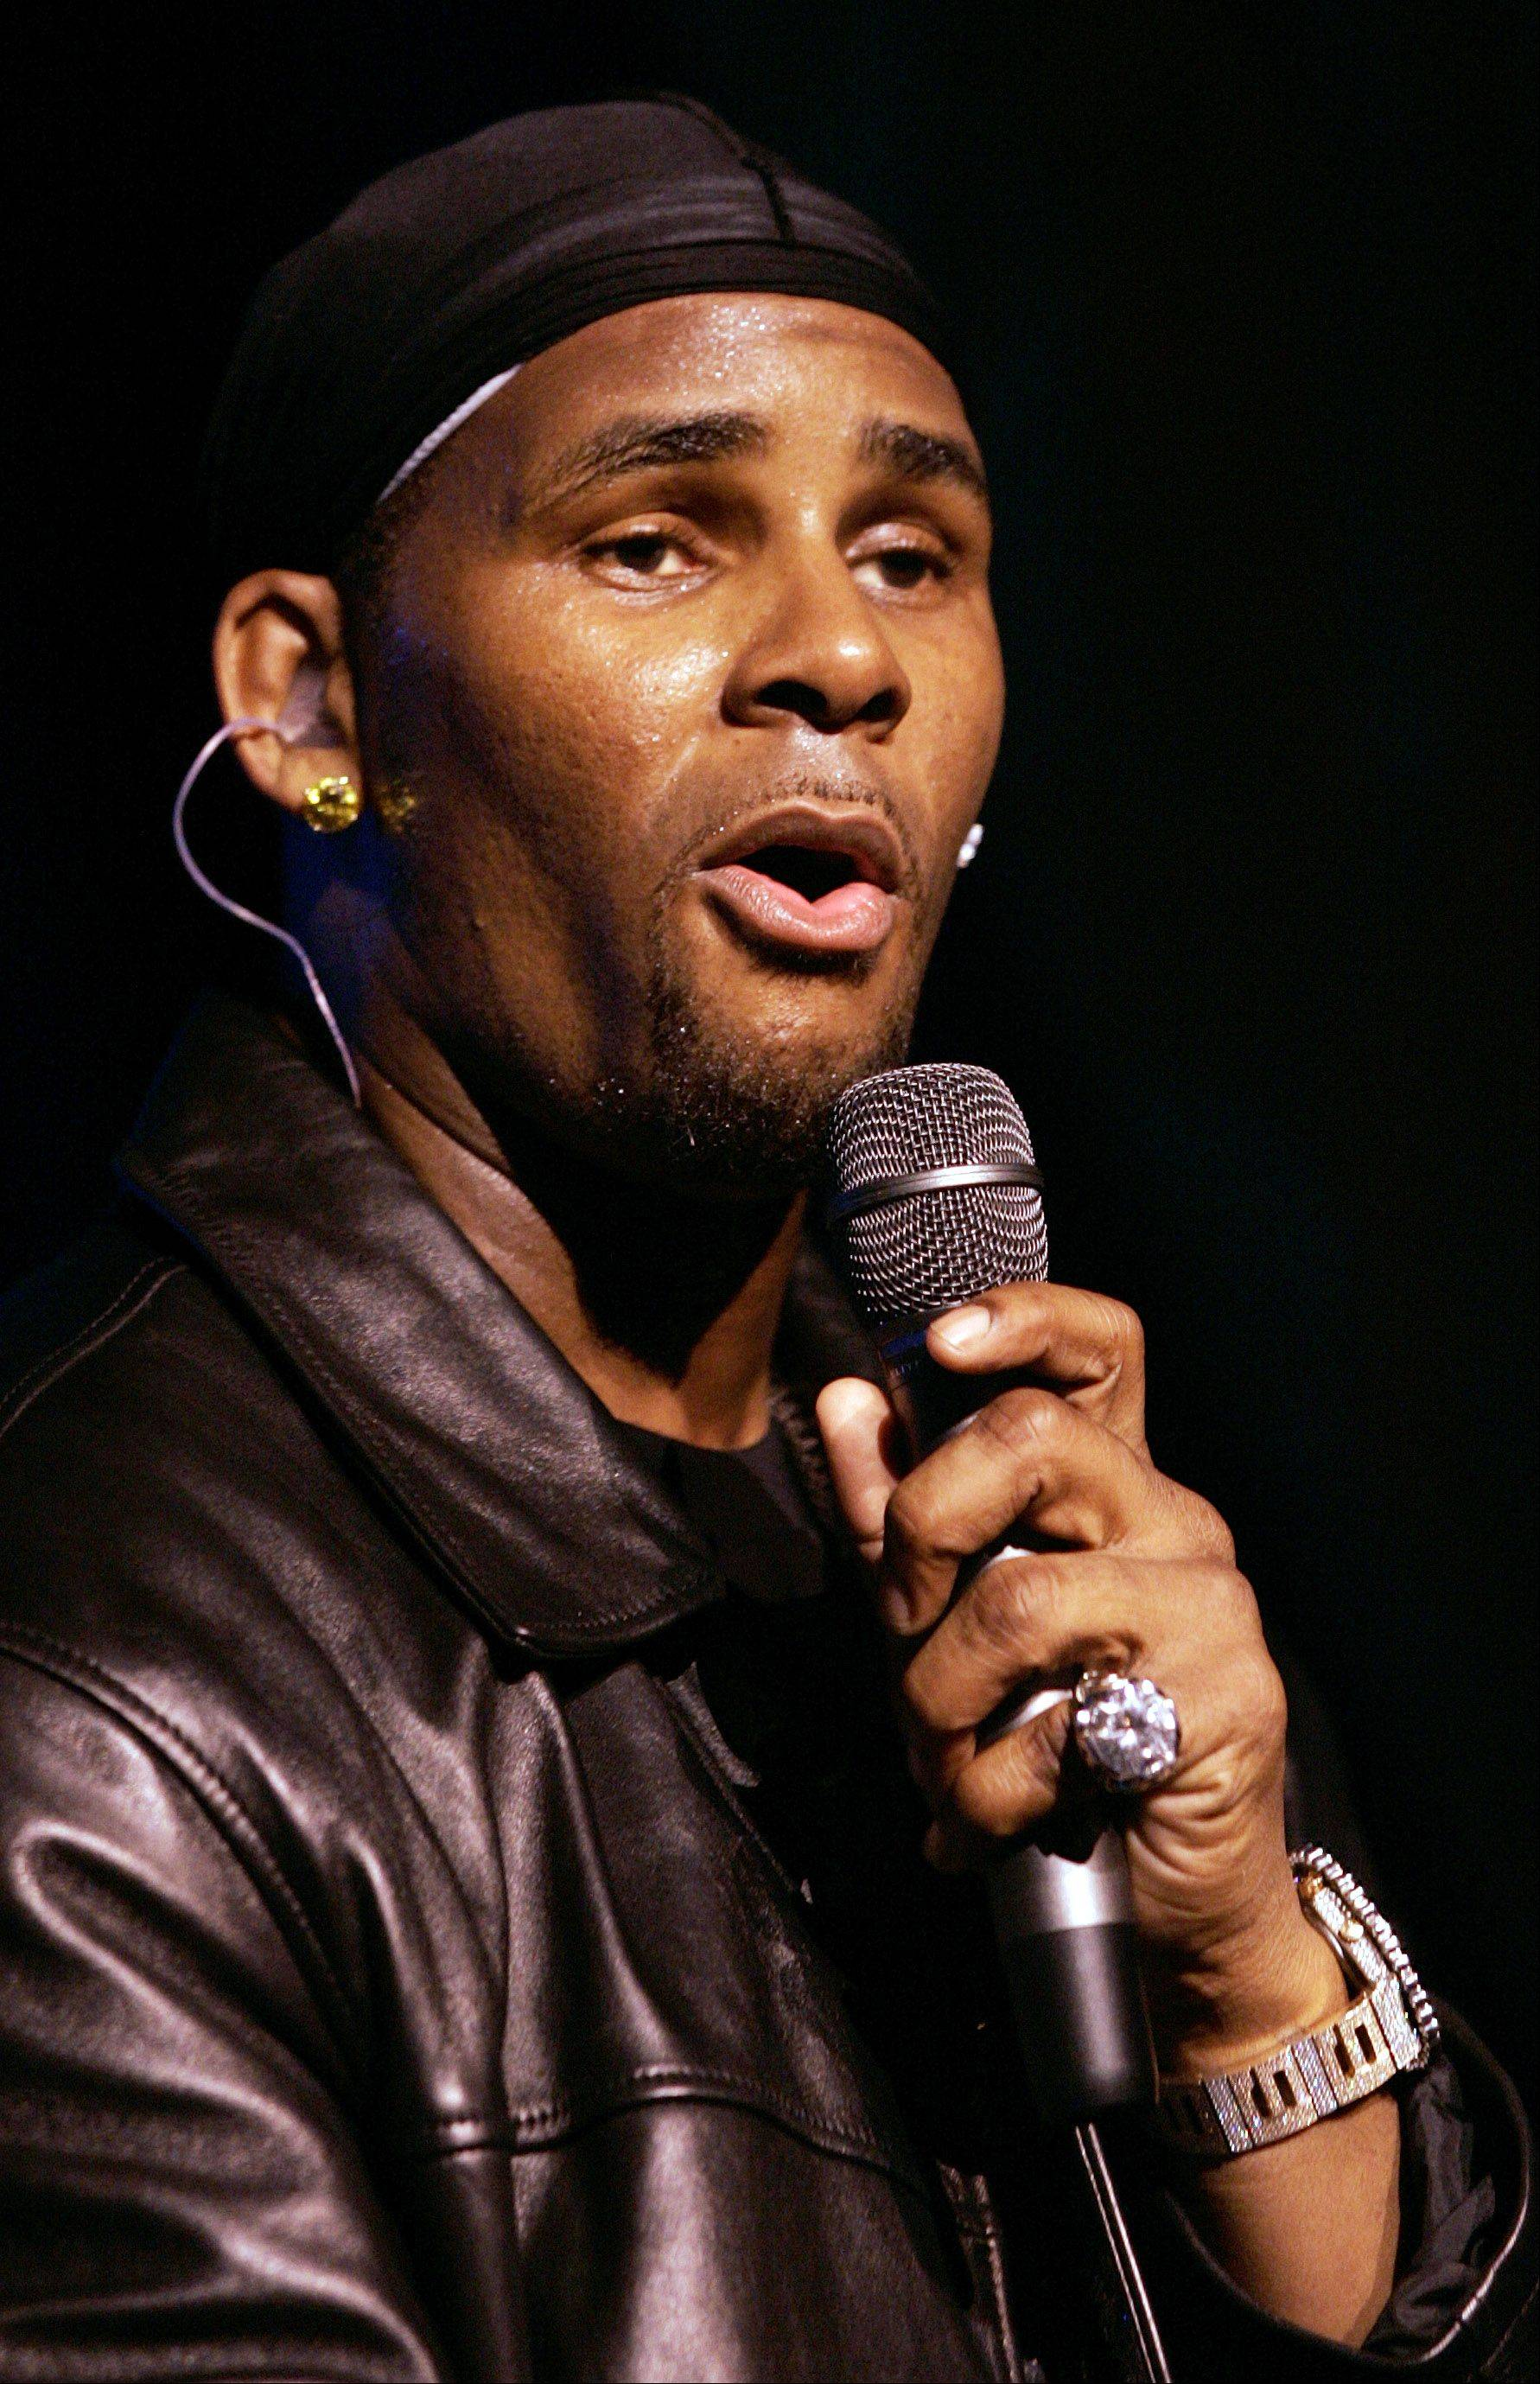 R&B star R. Kelly headlines WGCI'S BIG JAM at the Allstate Arena in Rosemont.